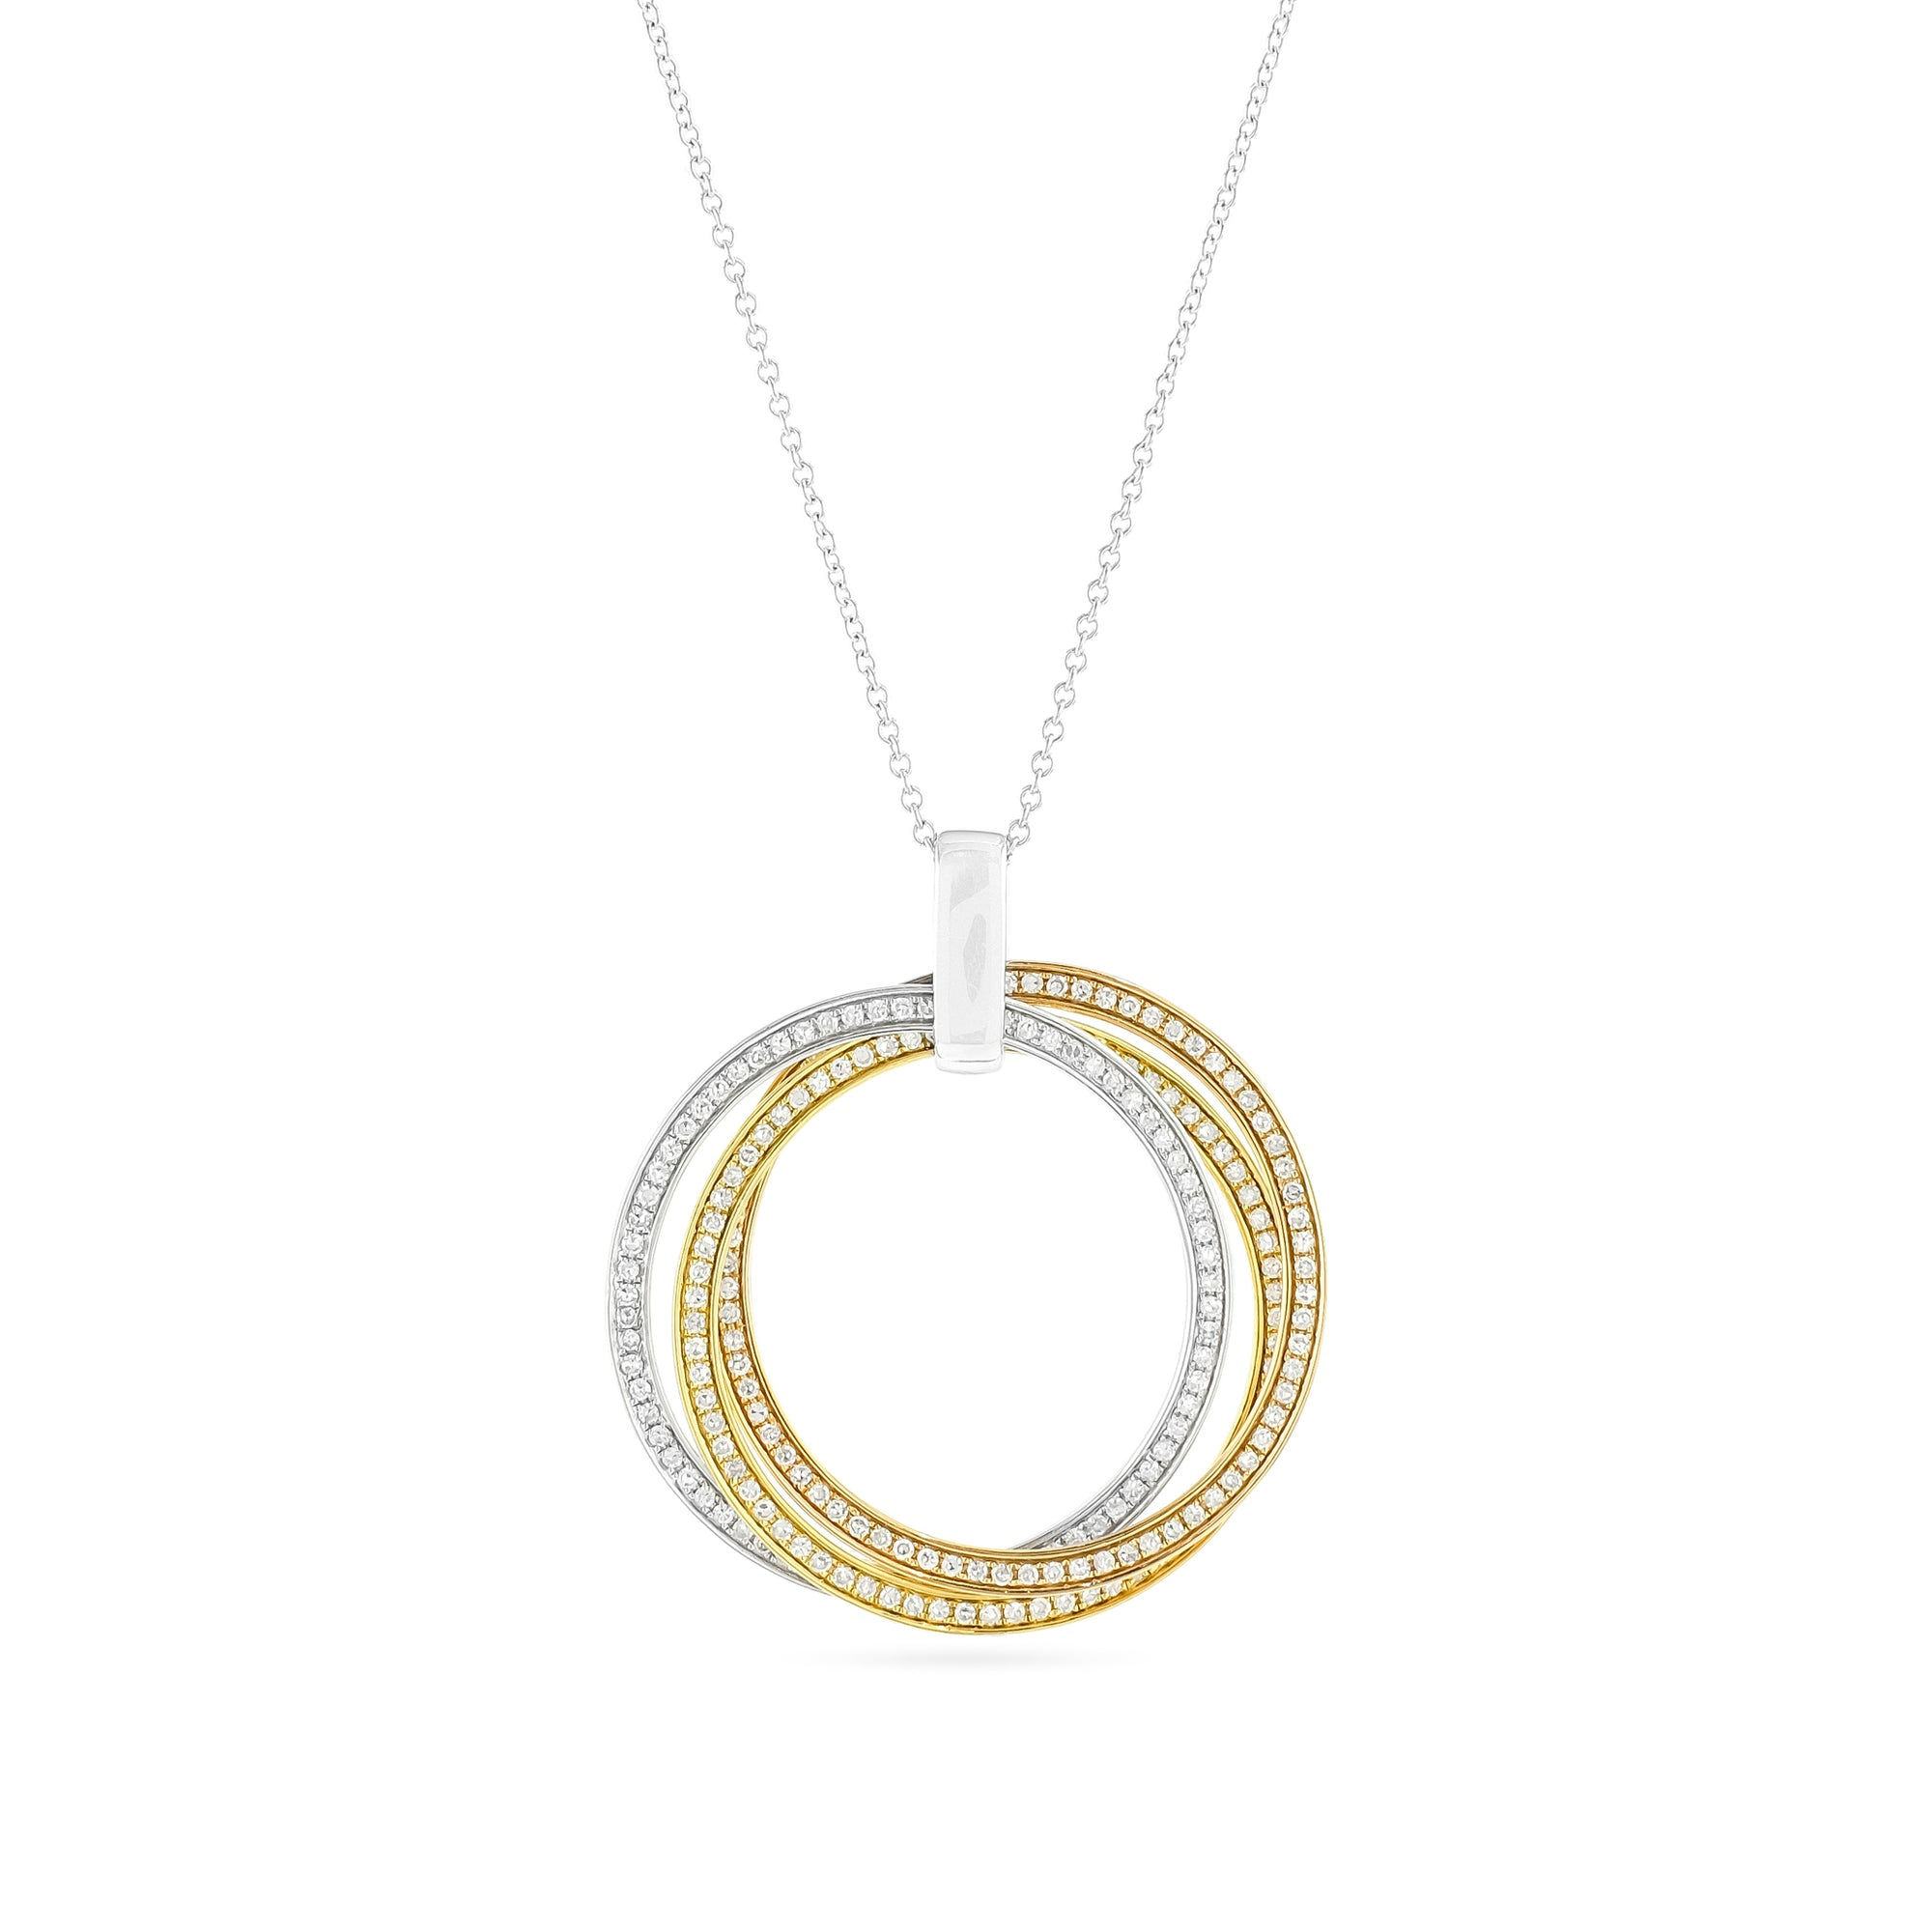 Vintage 18ct Tri-Colour Diamond Circle Necklace